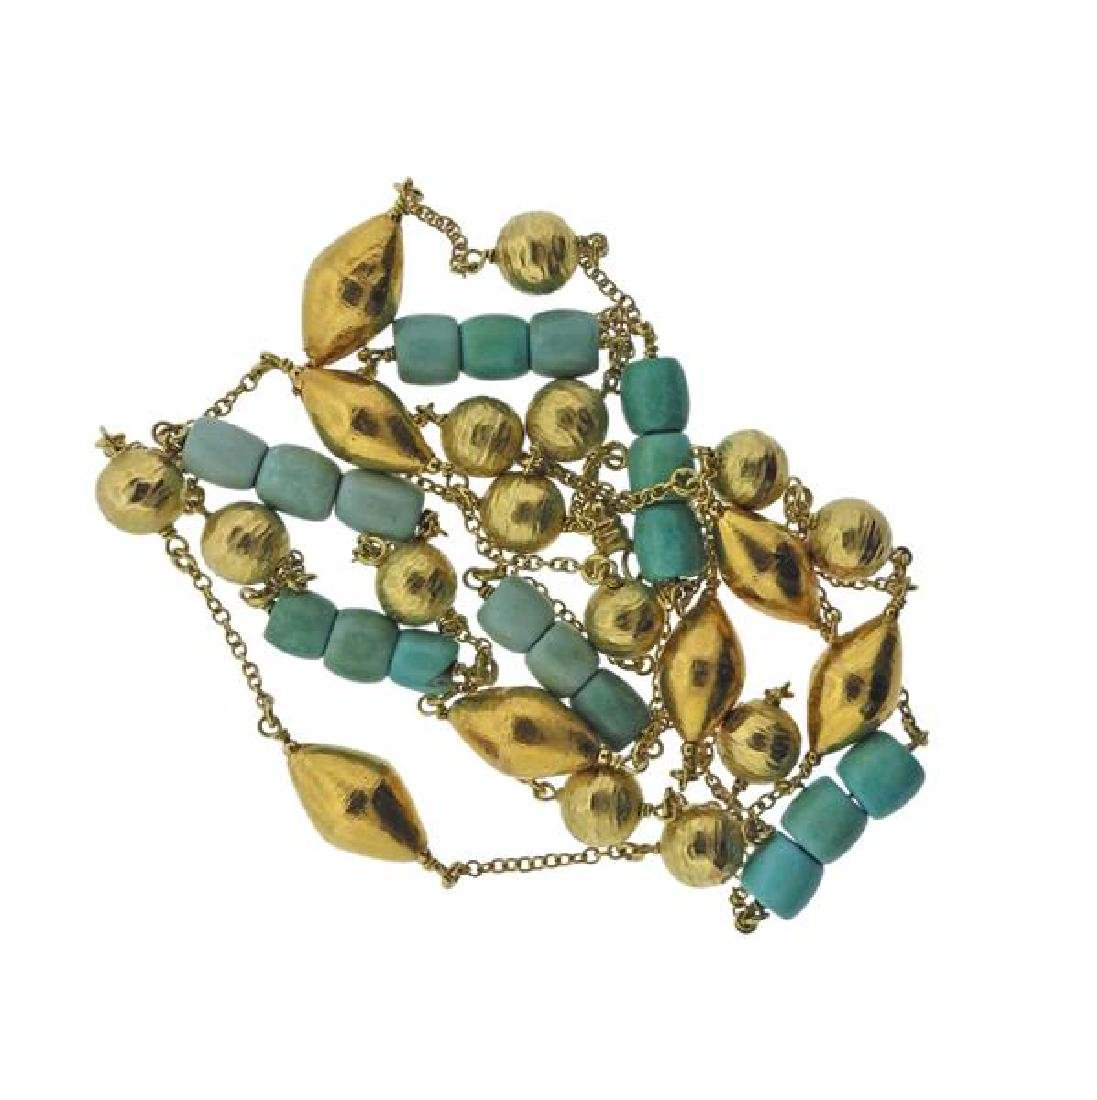 18K Gold Turquoise Station Long Necklace - 3